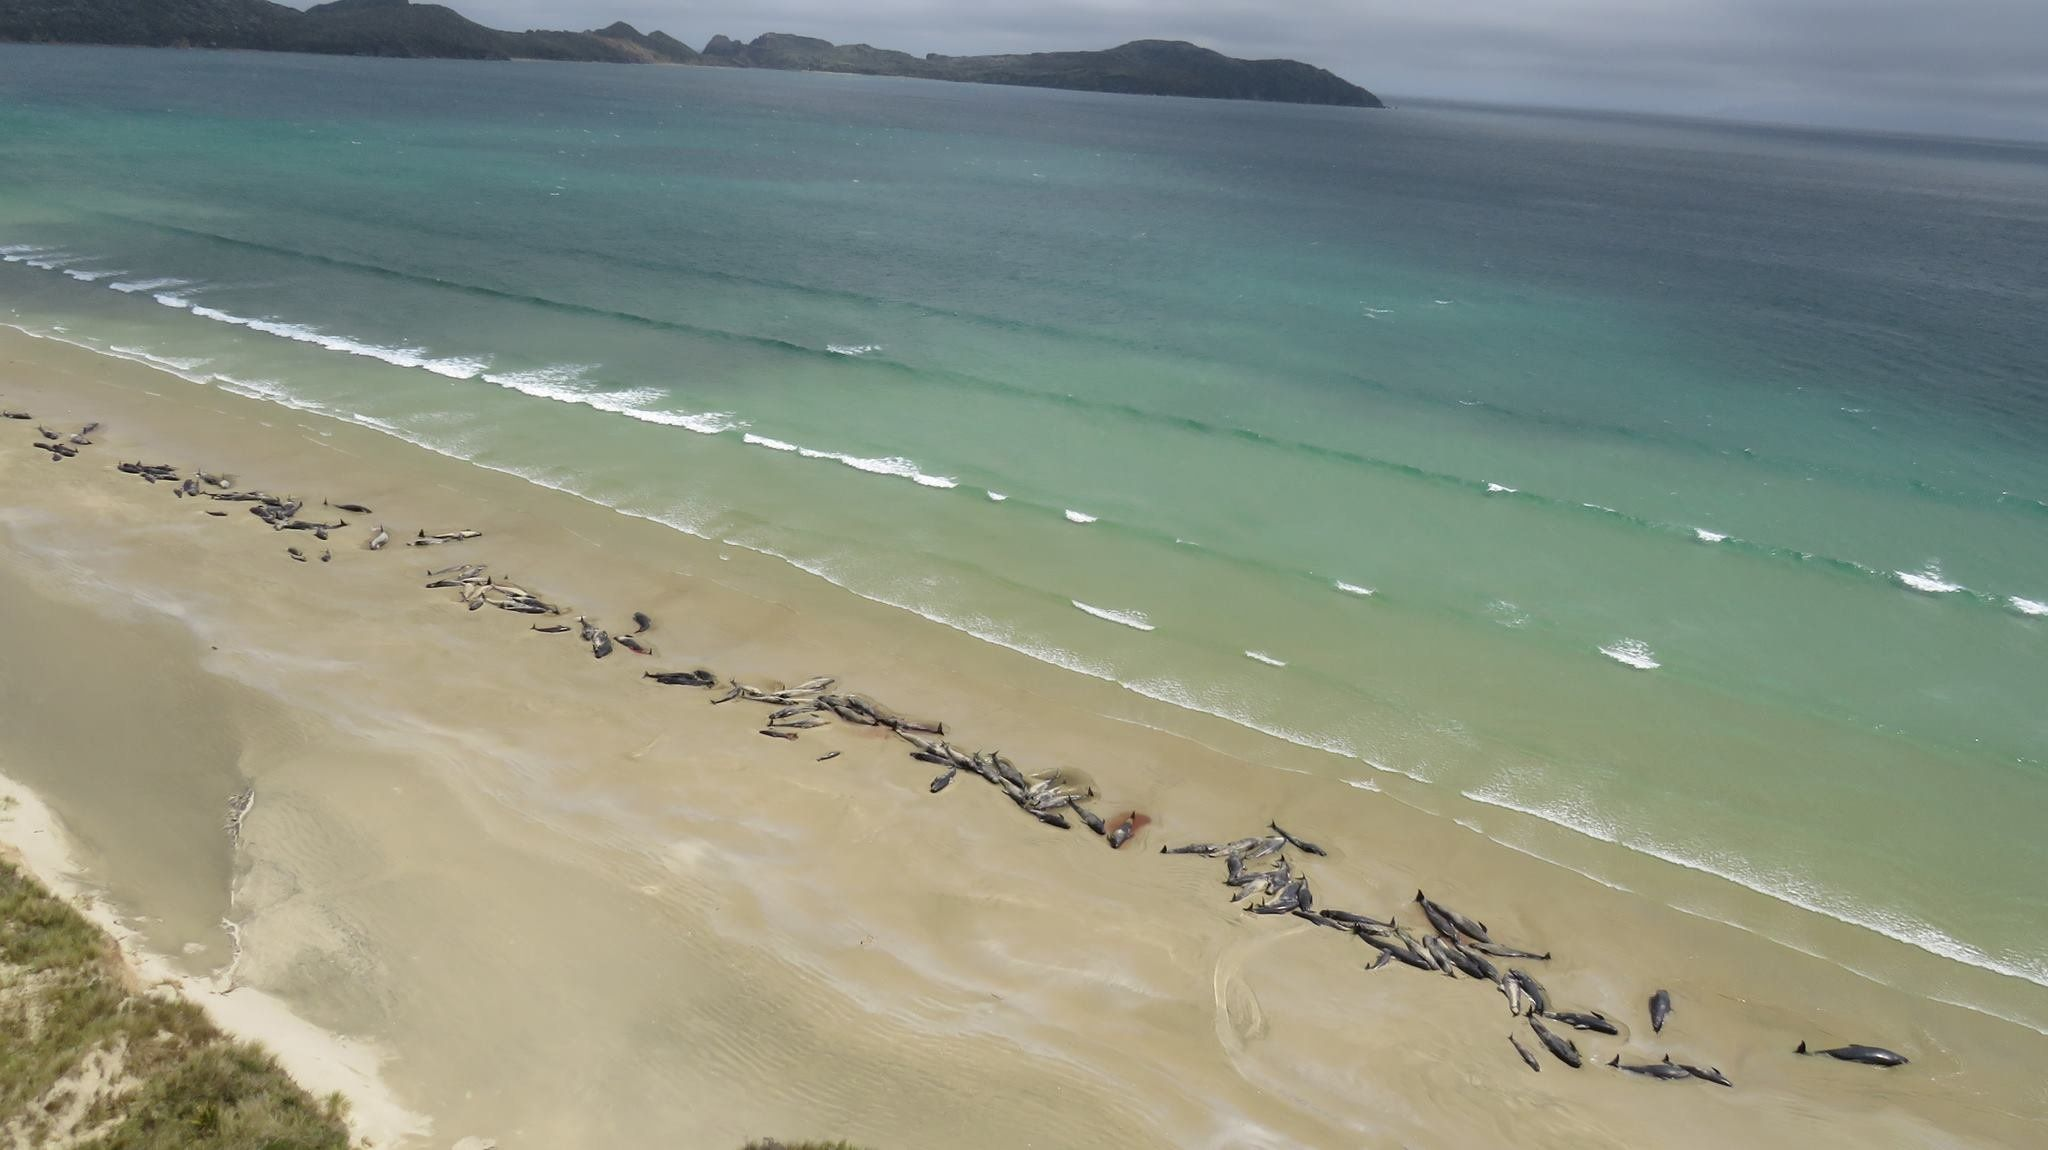 Almost half of the whales were already dead by the time they were discovered.